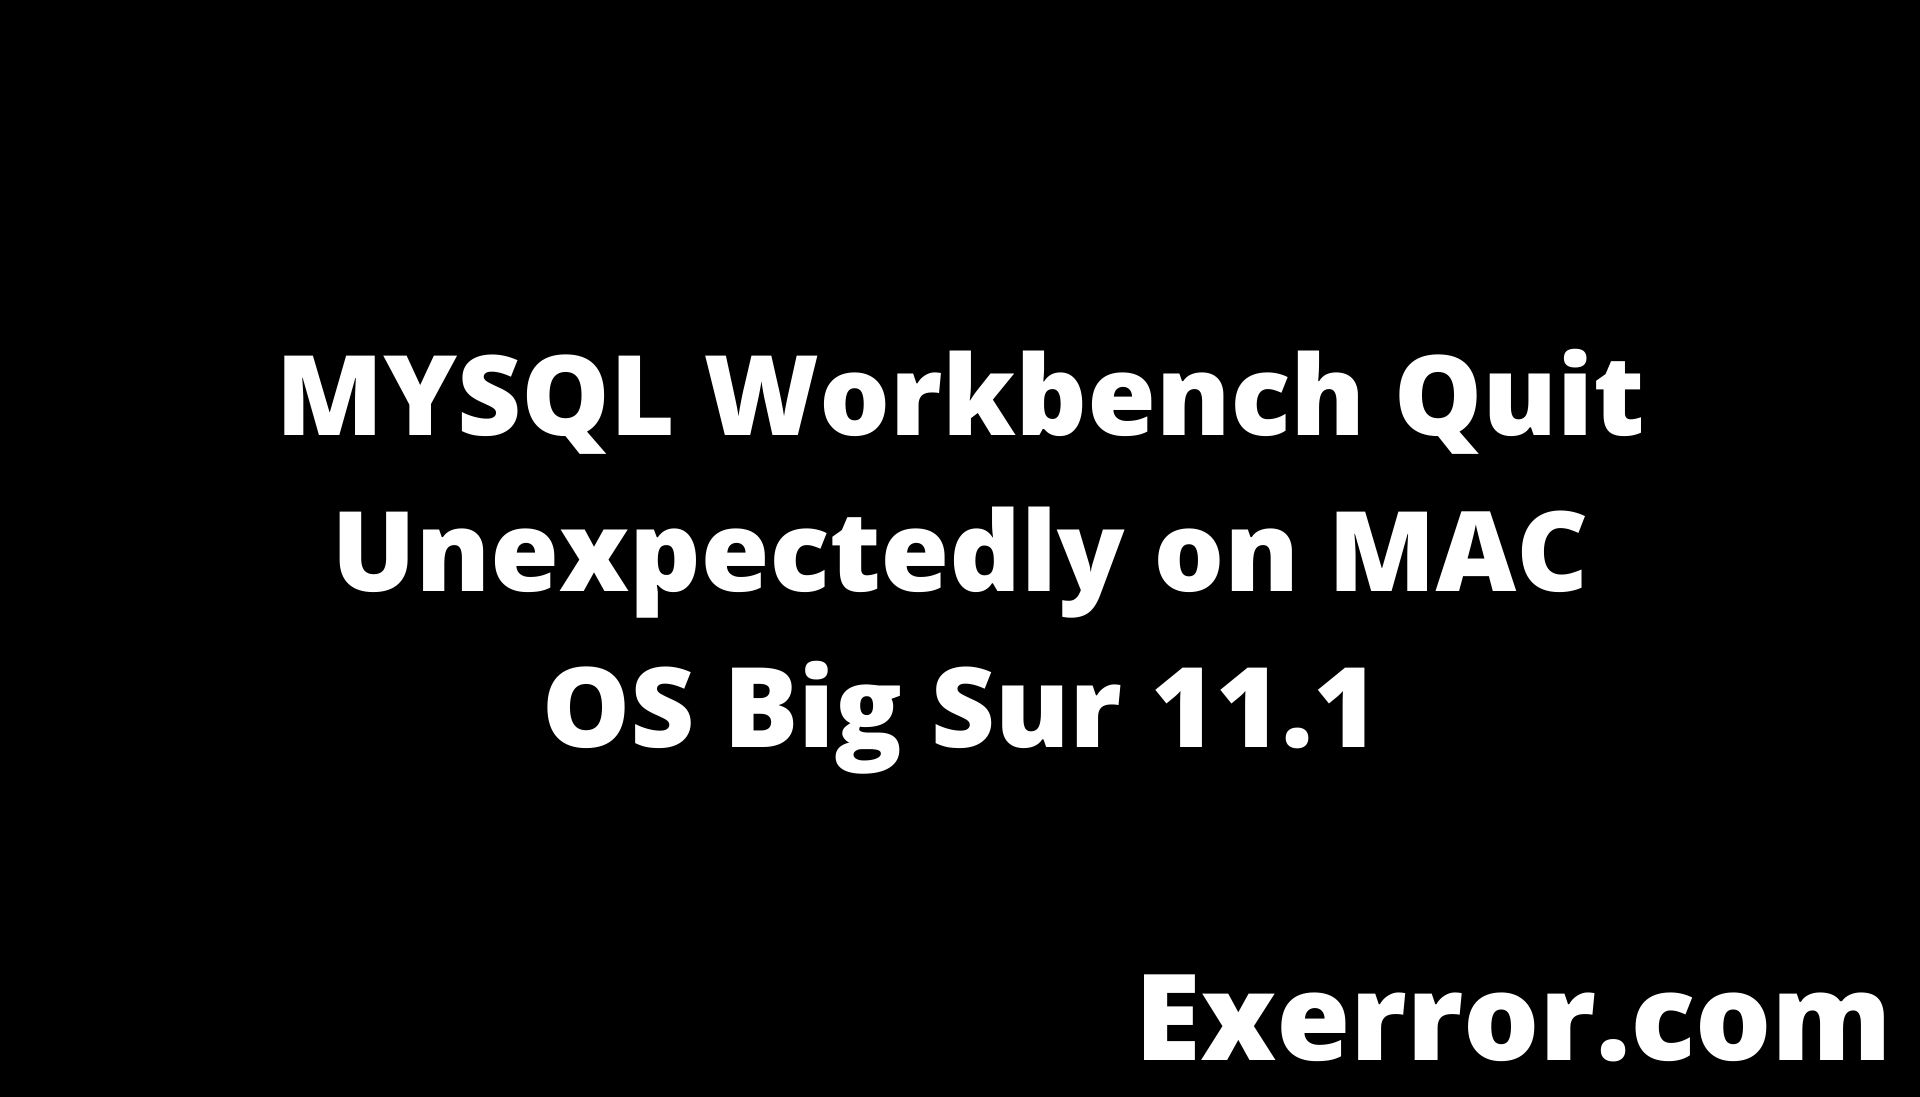 MYSQL Workbench Quit Unexpectedly on MAC OS Big Sur 11.1, workbench quit unexpectedly on mac, mysql quit unexpectedly on mac os, mac os big sur 11.1